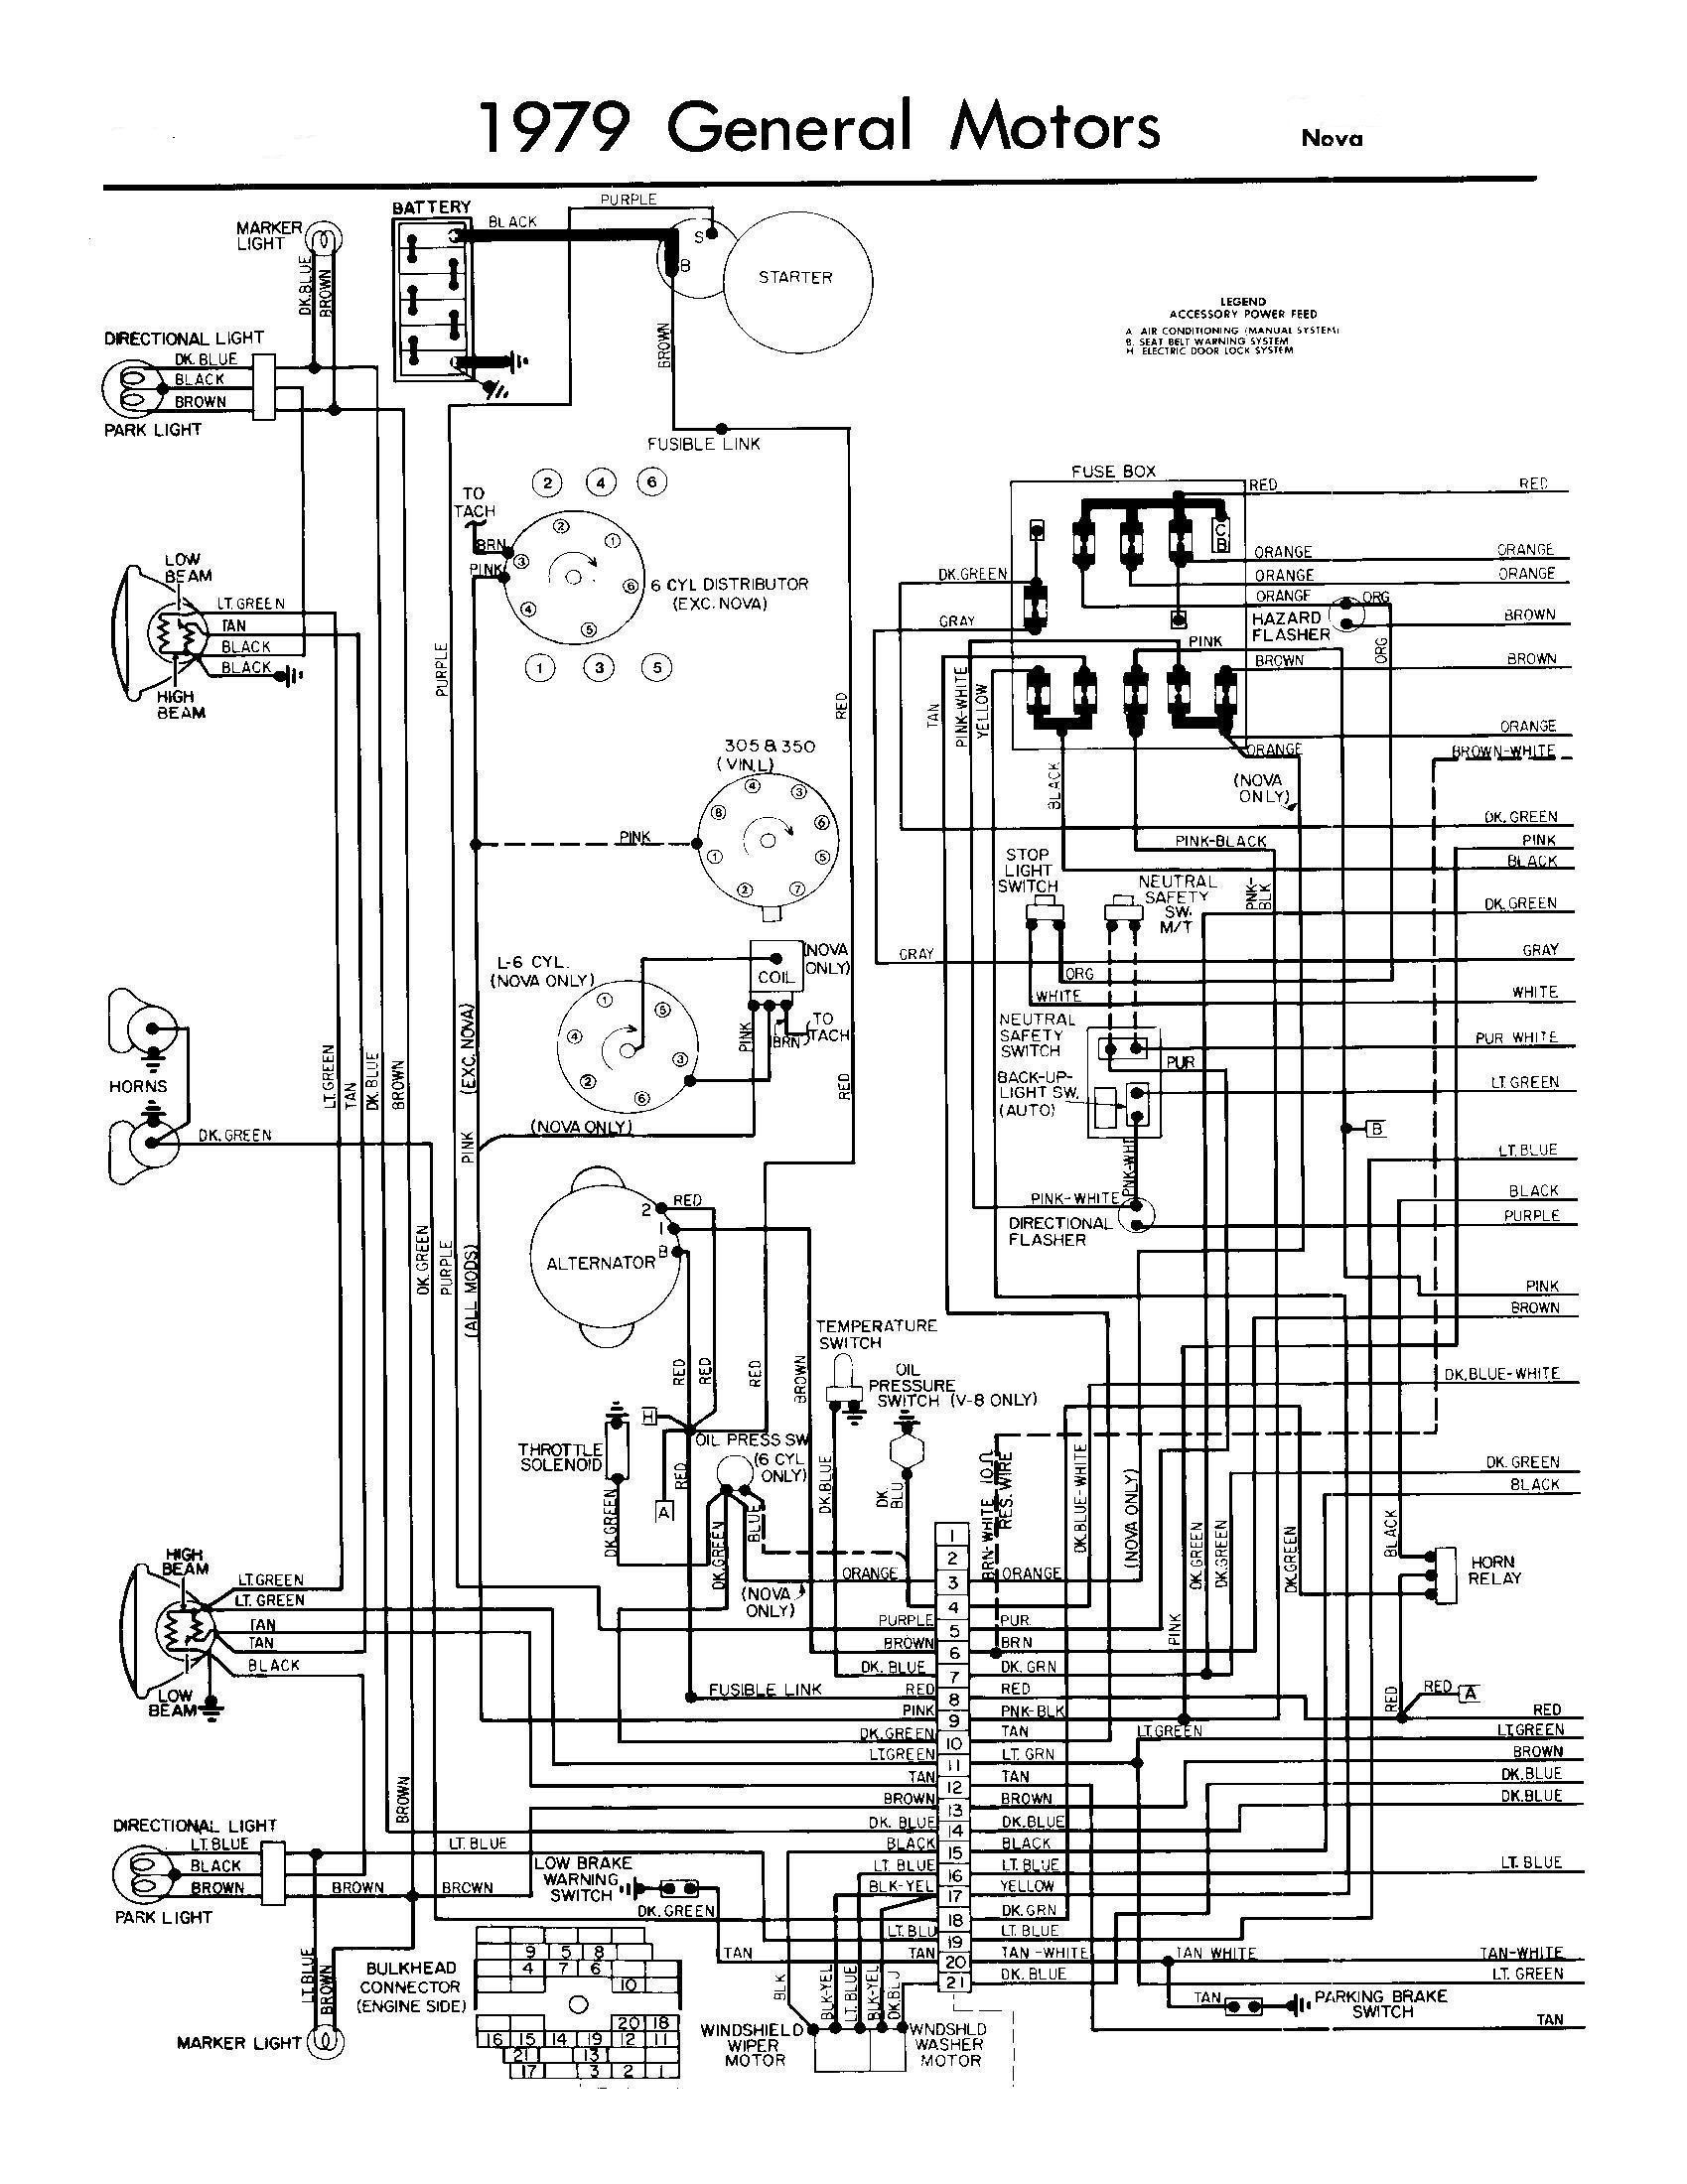 2013 chevy wiring harness diagram wiring diagram z1 rh 8 fder wrap kingz de